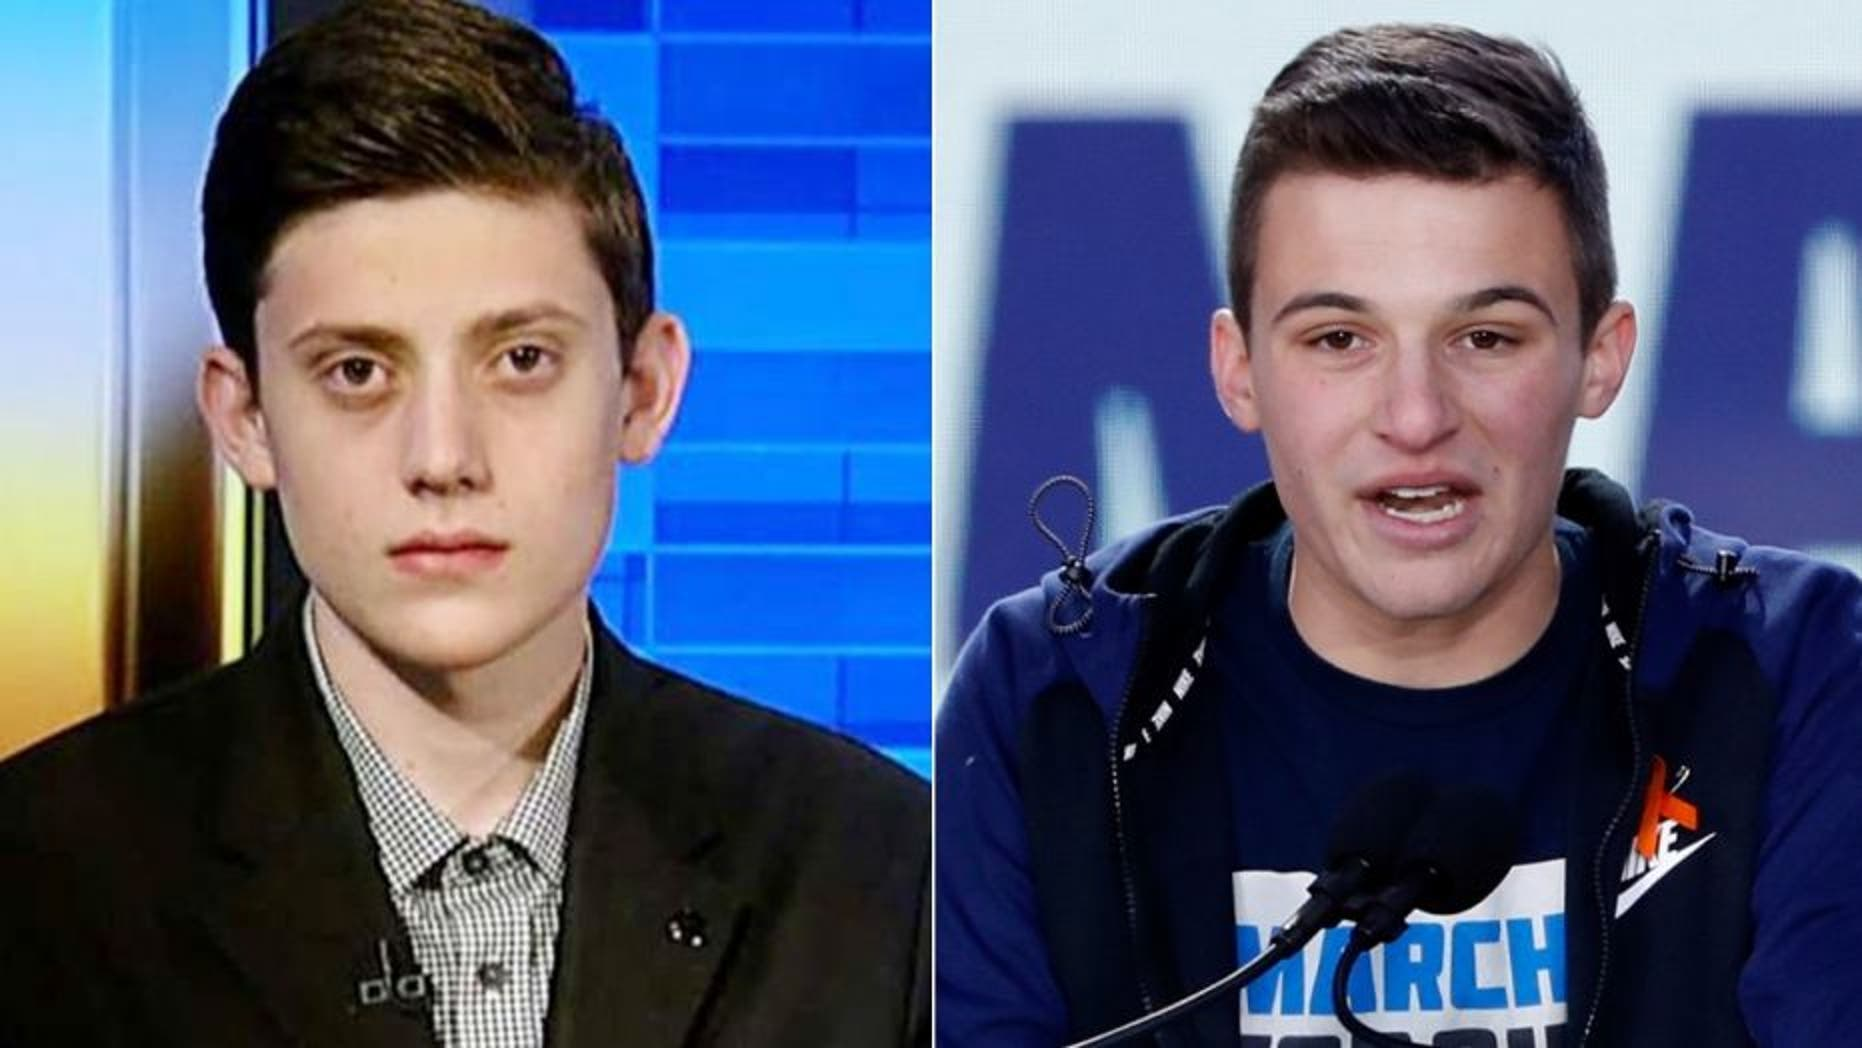 """Cameron Kasky (right), who agreed to a live debate over his conflicting views over gun reform with fellow Marjory Stoneman Douglas student Kyle Kashuv, has pulled out of the deal citing """"personal reasons."""""""